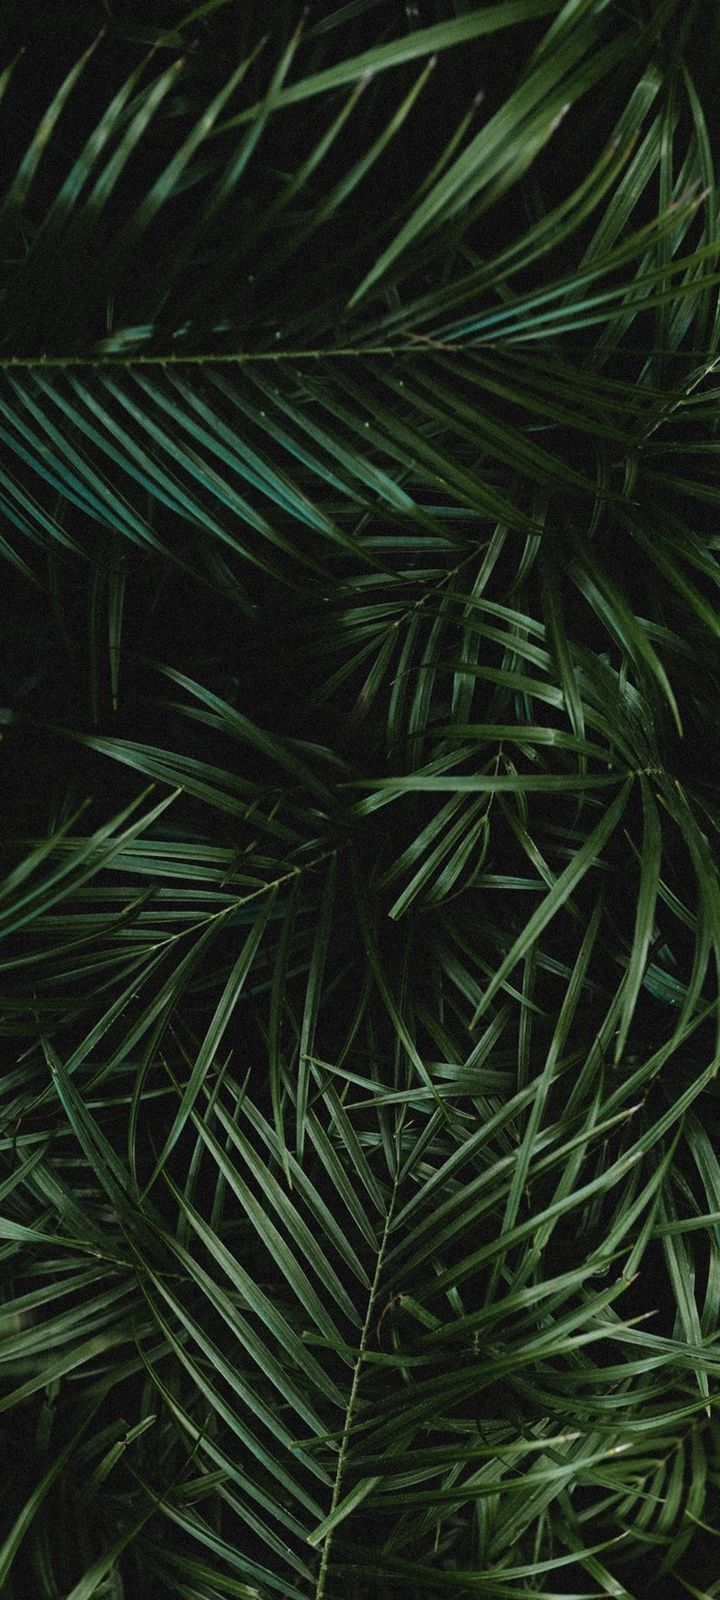 Palm Leaves Branches Wallpaper 720x1600